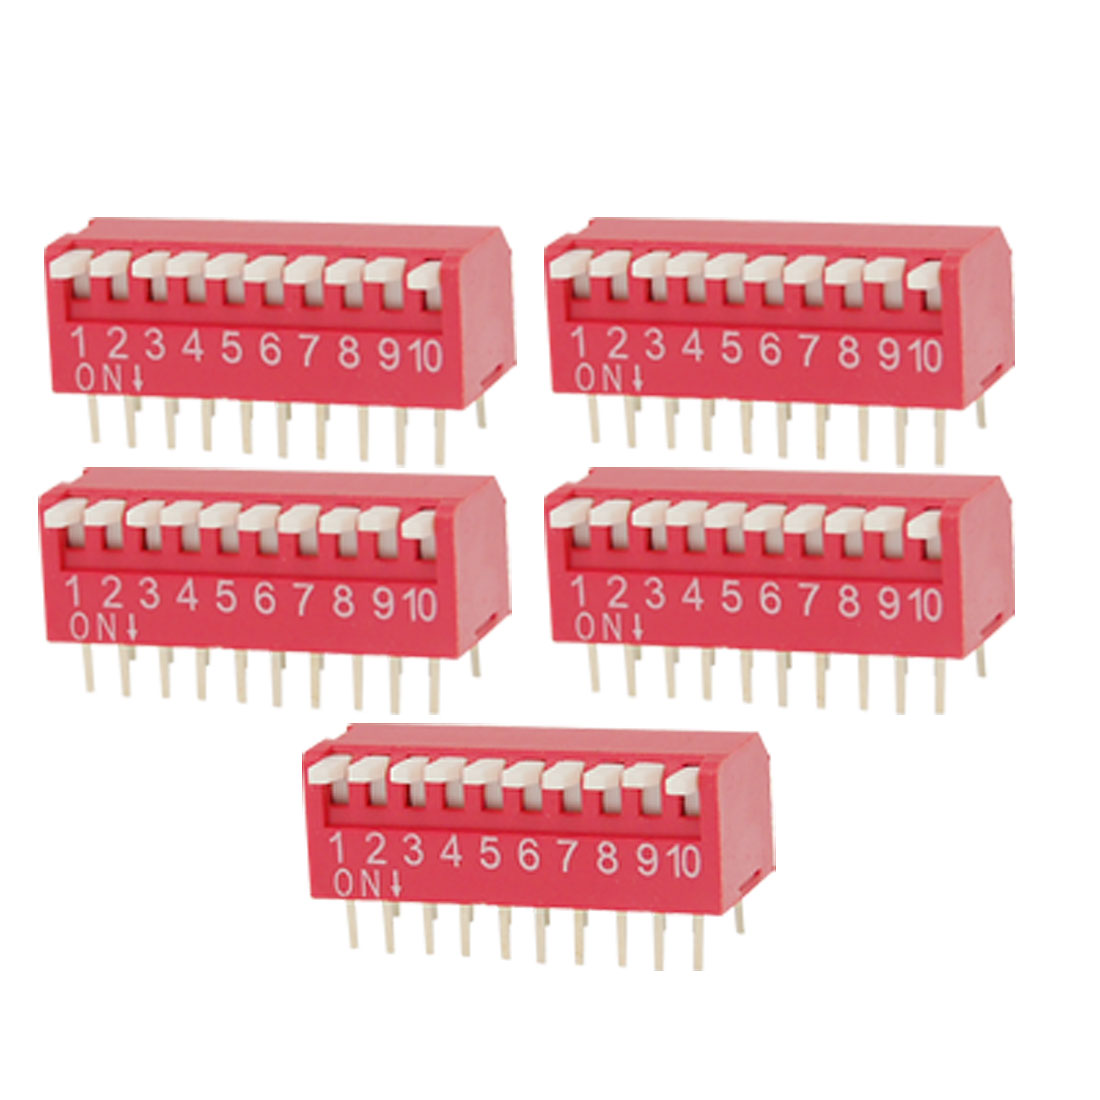 5 Pcs 10 Ways 20 Pin 2.54mm Pitch Side Piano Type Red DIP Switch